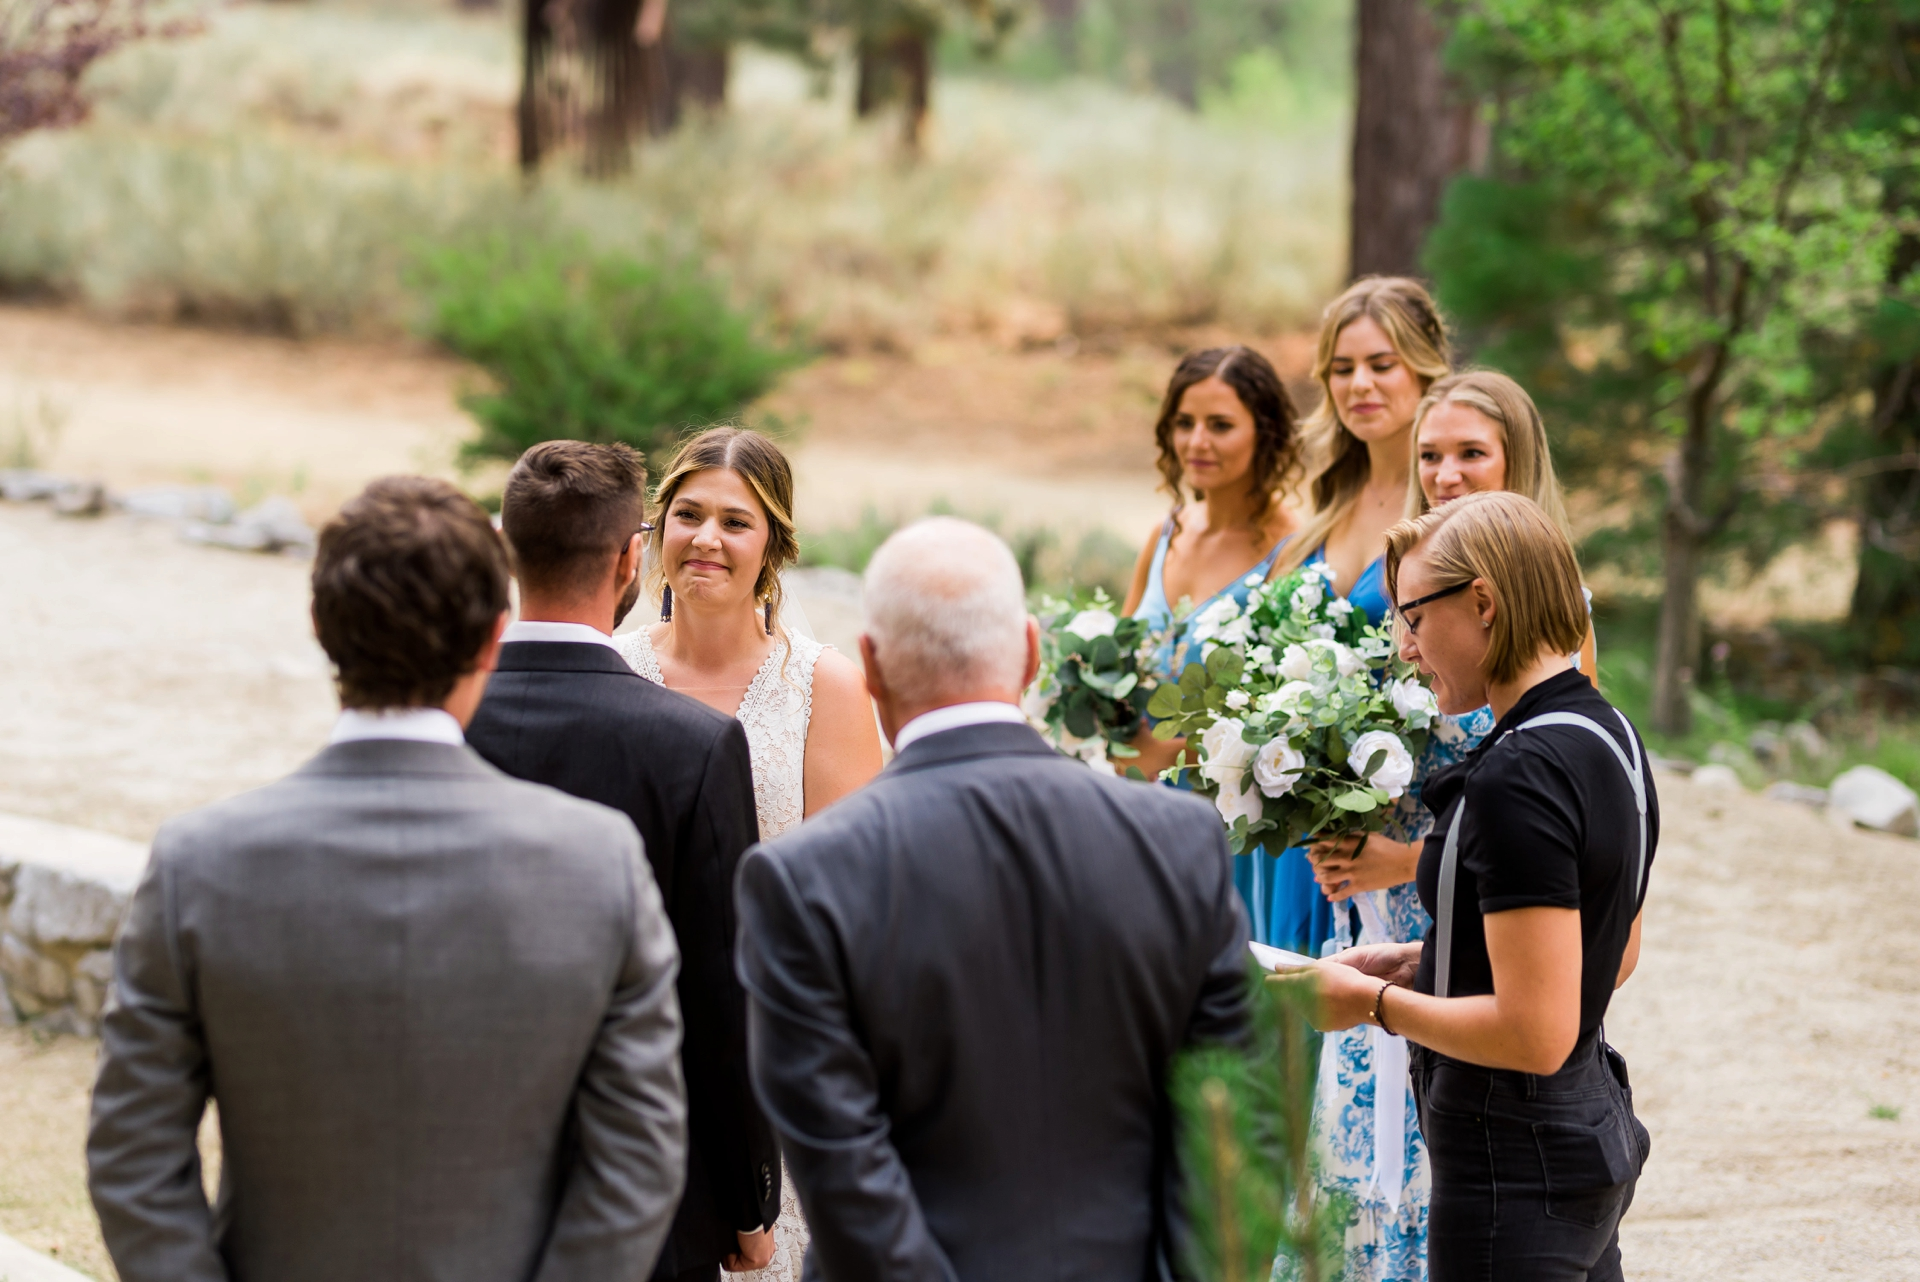 Lake Tahoe Community College Demonstration Garden Wedding Image | The bride looks on at her husband to be while giving their vows